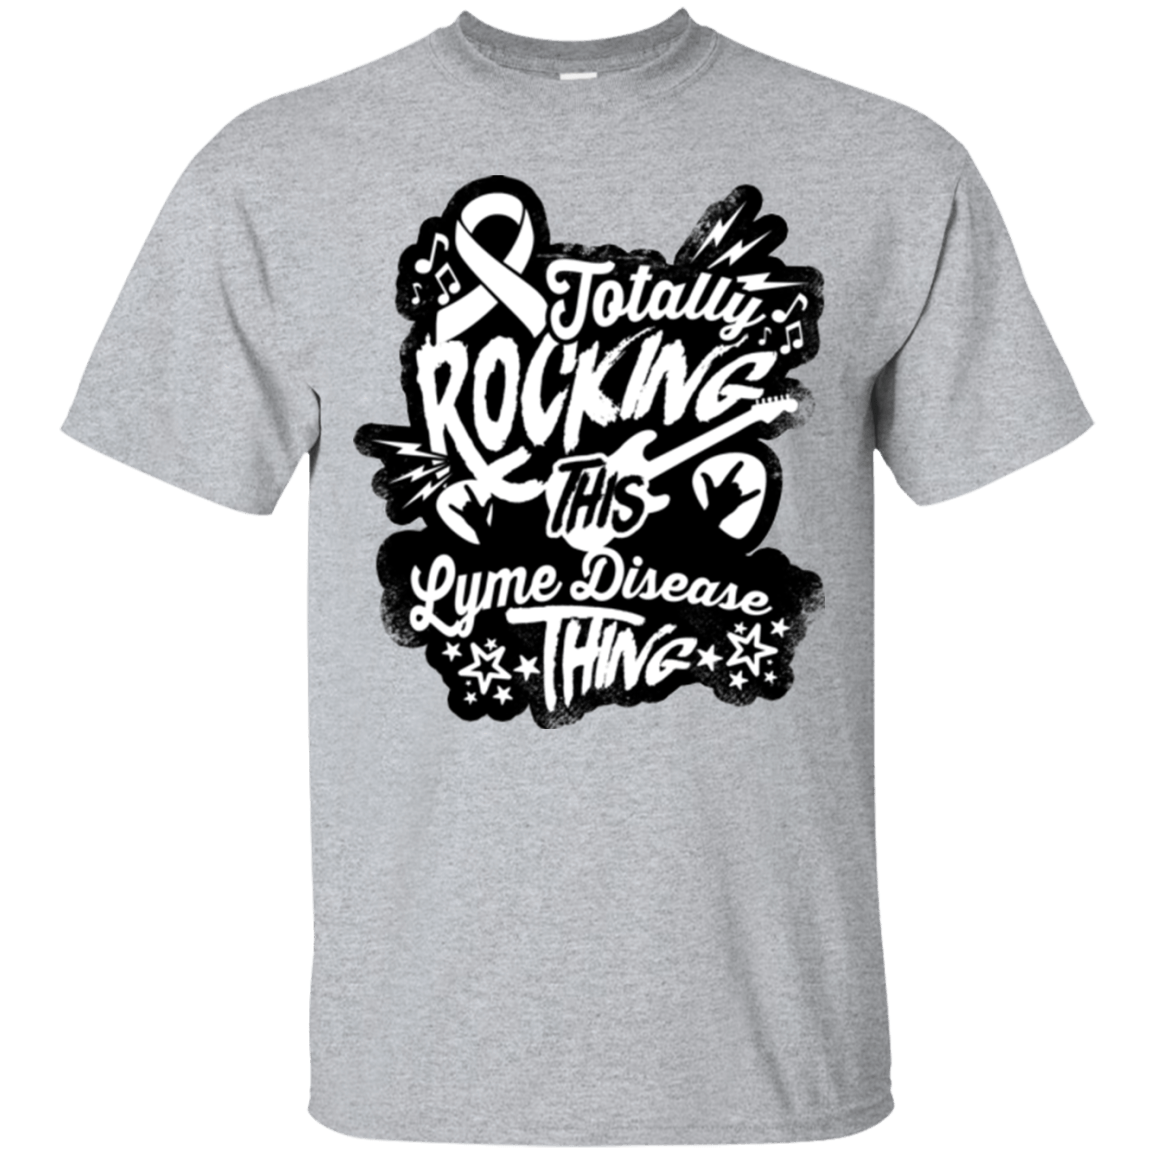 Rocking Lyme Disease Unisex Shirt - The Unchargeables